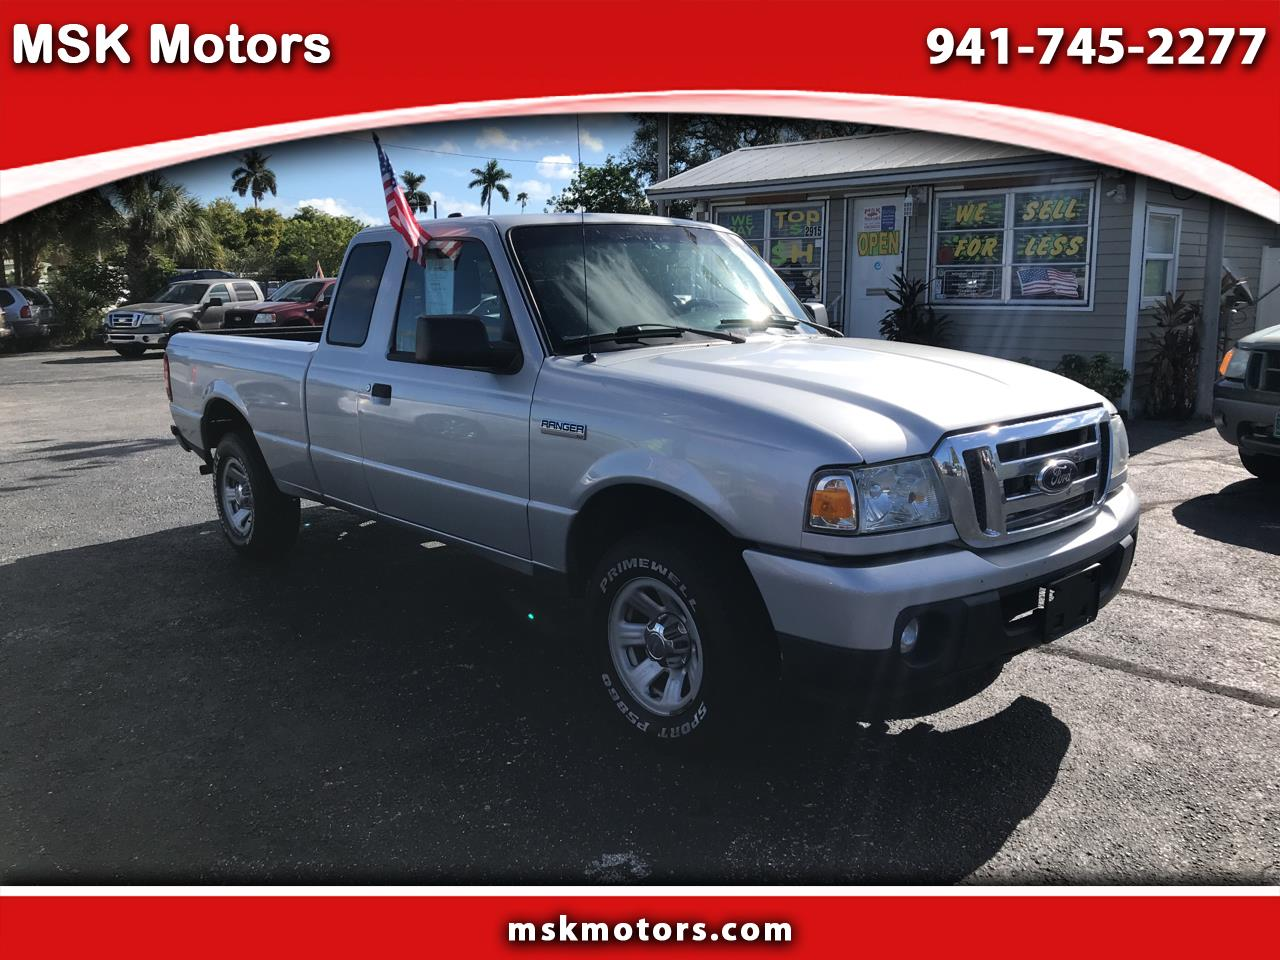 Ford Ranger XLT SuperCab 2-Door 2WD 2011